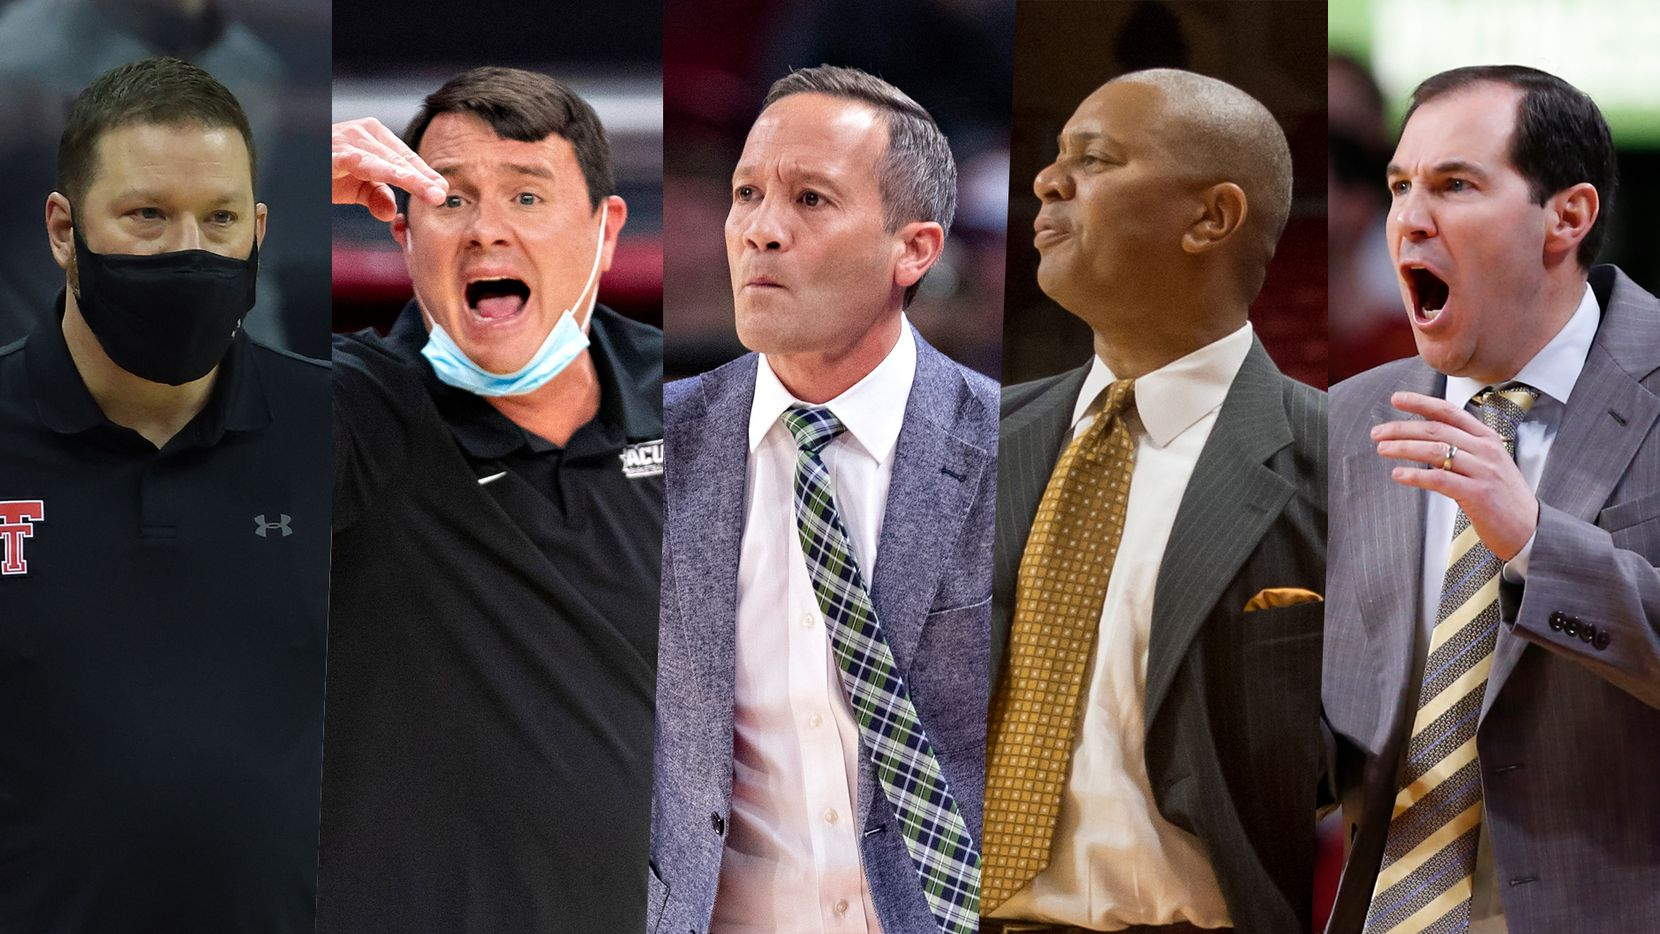 These five coaches will all lead their respective Texas teams in the NCAA Tournament. More than hailing from the same state, many have personal connections. (From left to right Texas Tech head coach Chris Beard, Abilene Christian HC Joe Golding, North Texas head coach Grant McCasland, Texas Southern HC Johnny Jones and Baylor head coach Scott Drew.)